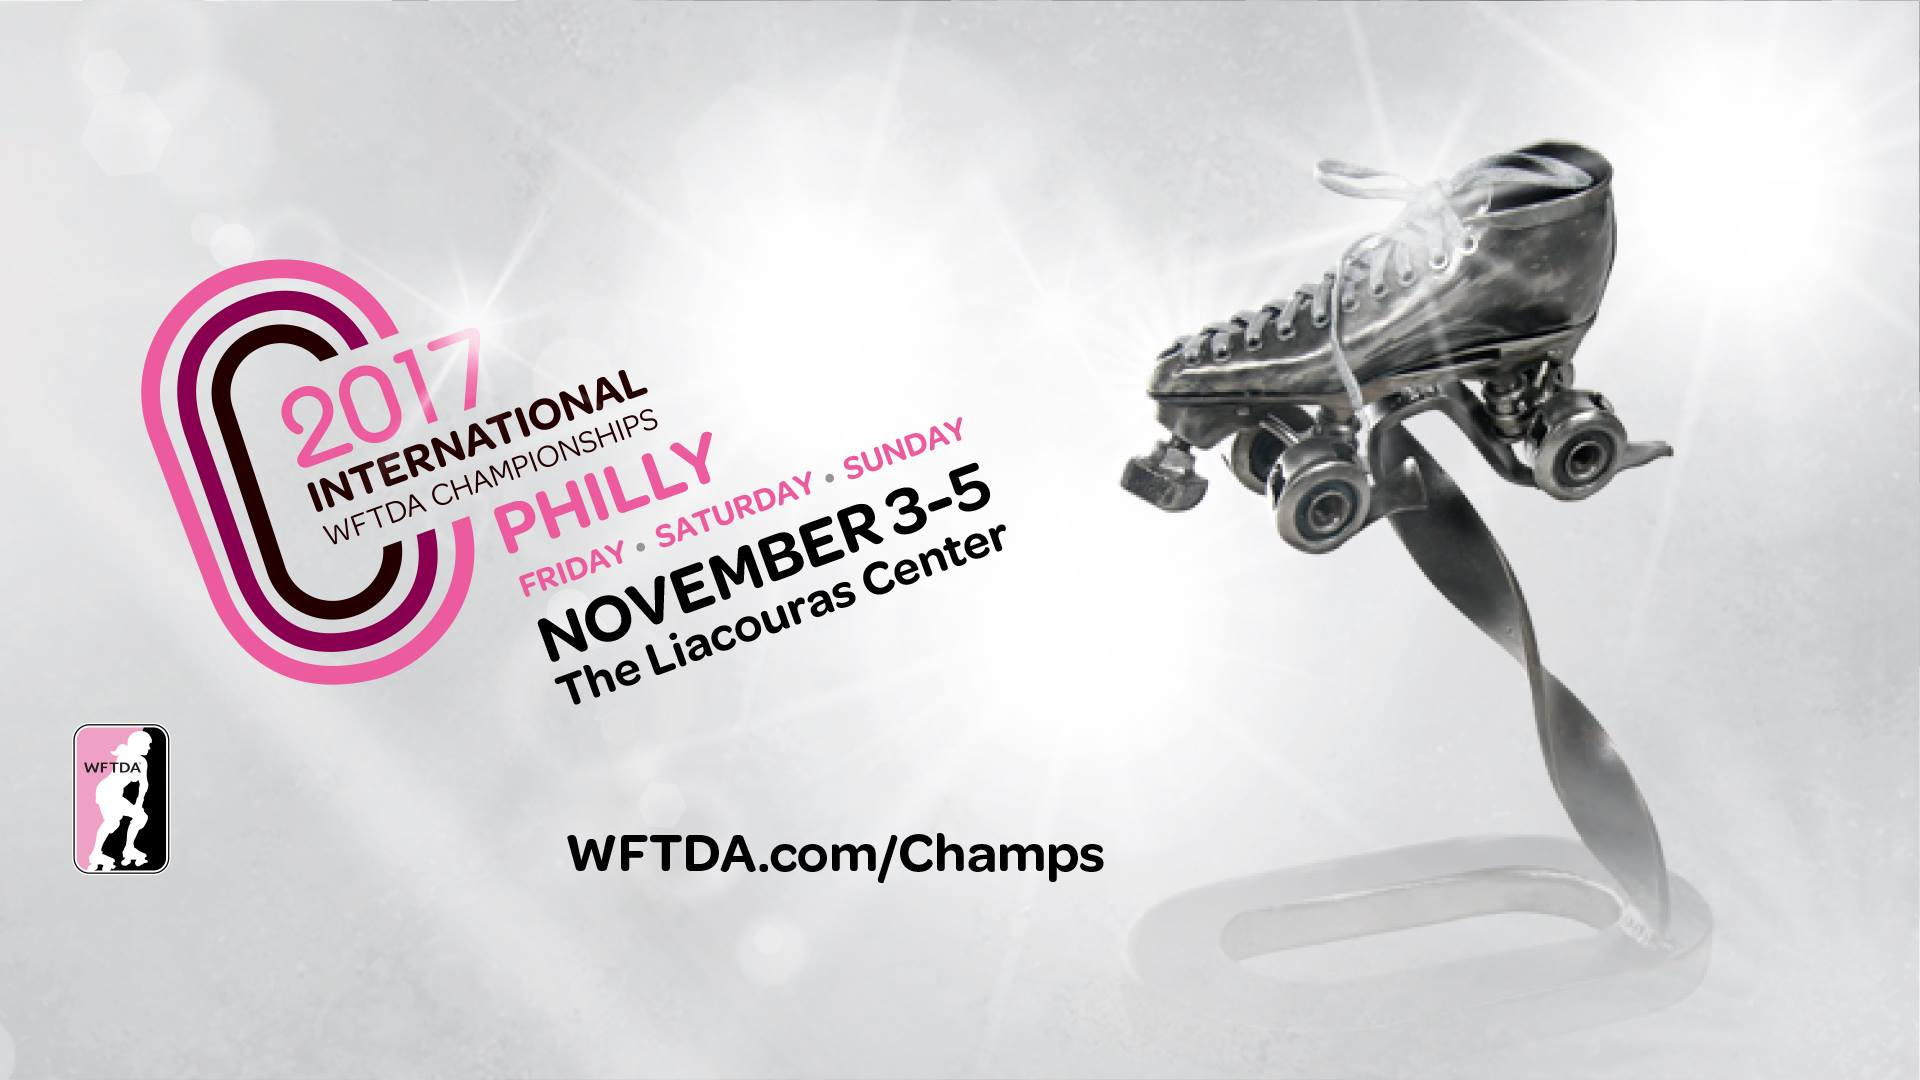 Philly Hosts 2017 WFTDA Champs